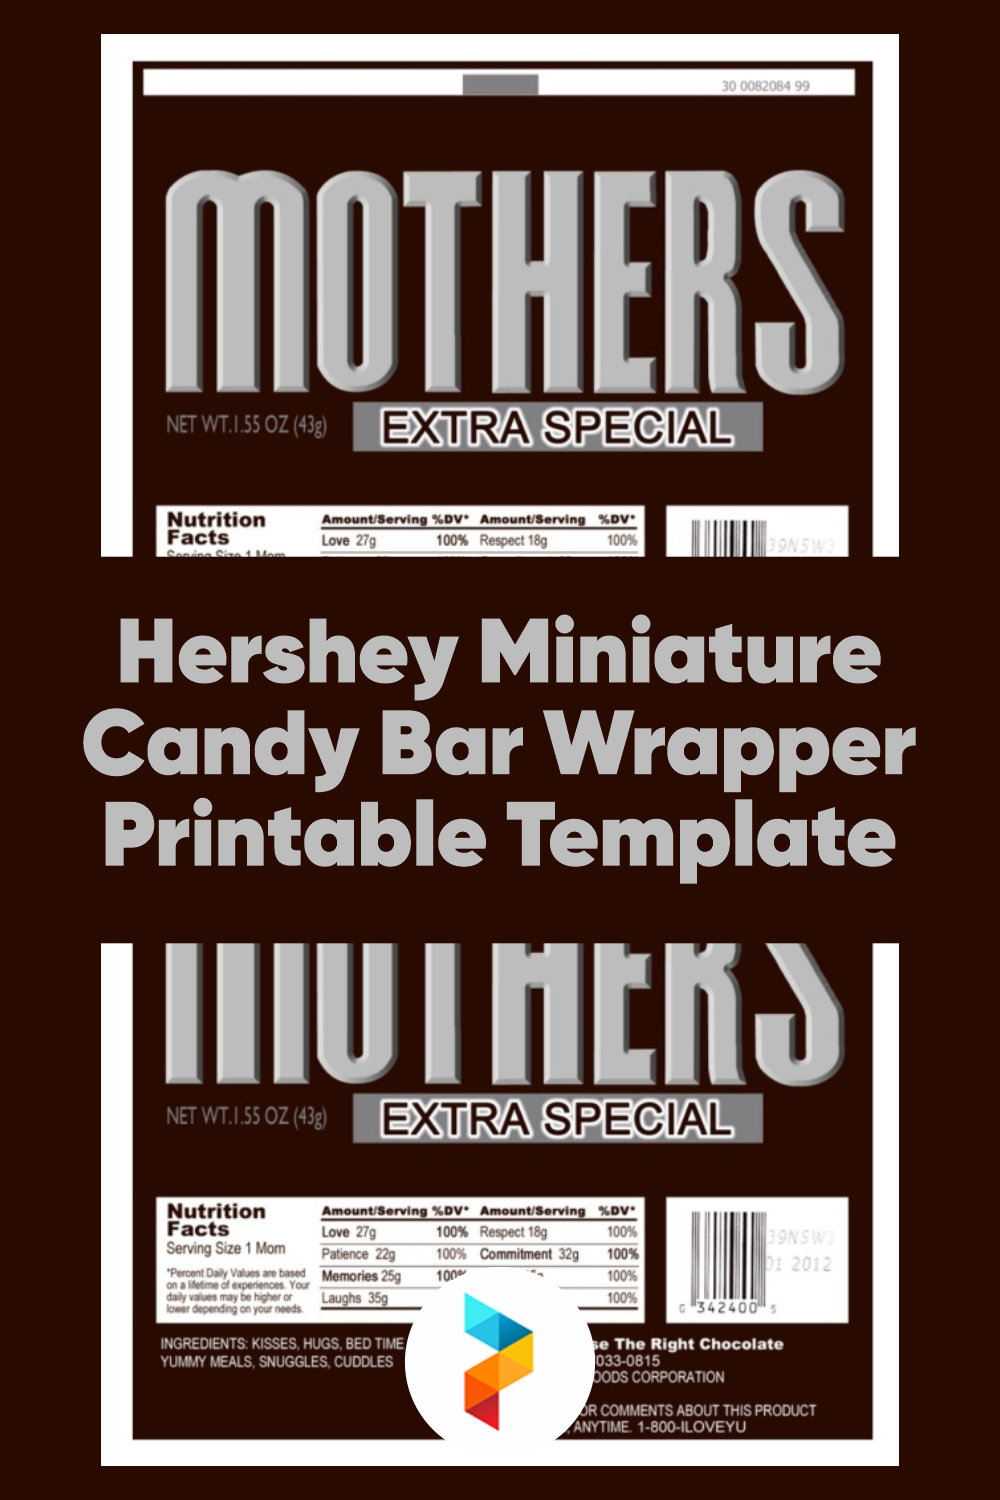 Hershey Miniature Candy Bar Wrapper Printable Template